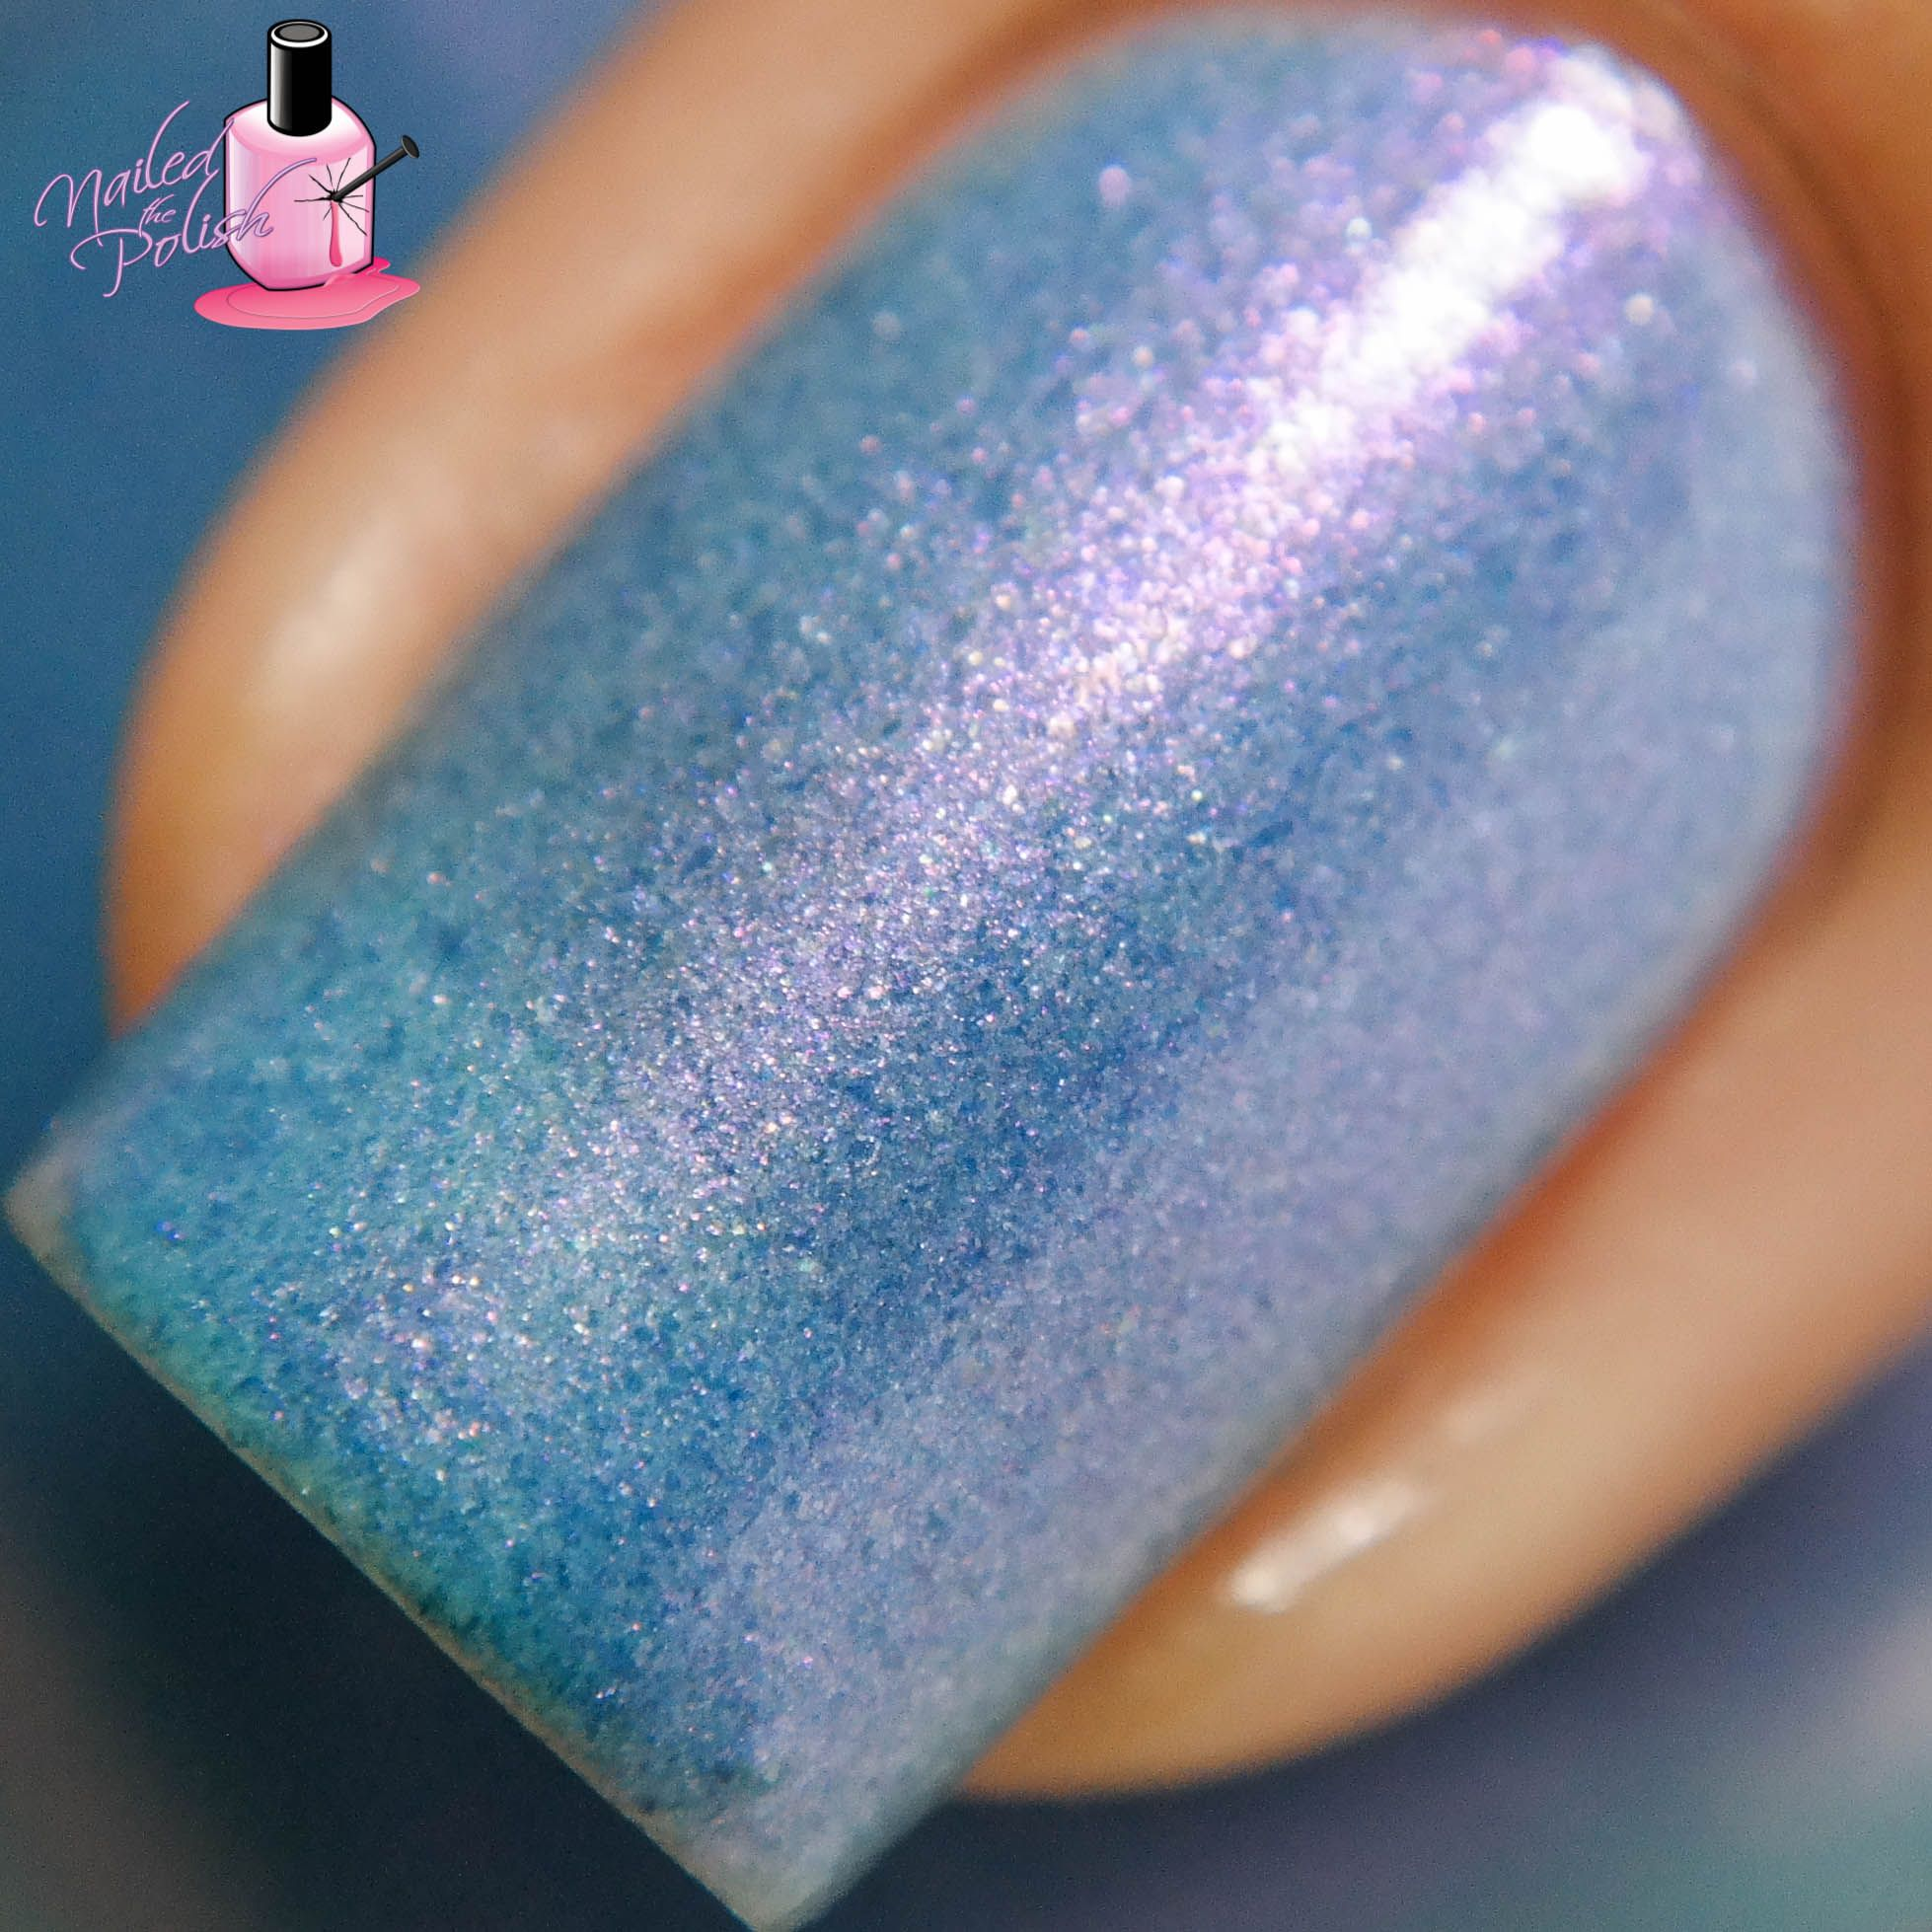 Buh Buh Buh Buh Buh - Periwinkle blue jelly base with intense violet shimmer and micro flake.  This polish glows and the color differs in different lighting and hand movement. Swatch by @nailedthepolish on Instagram.